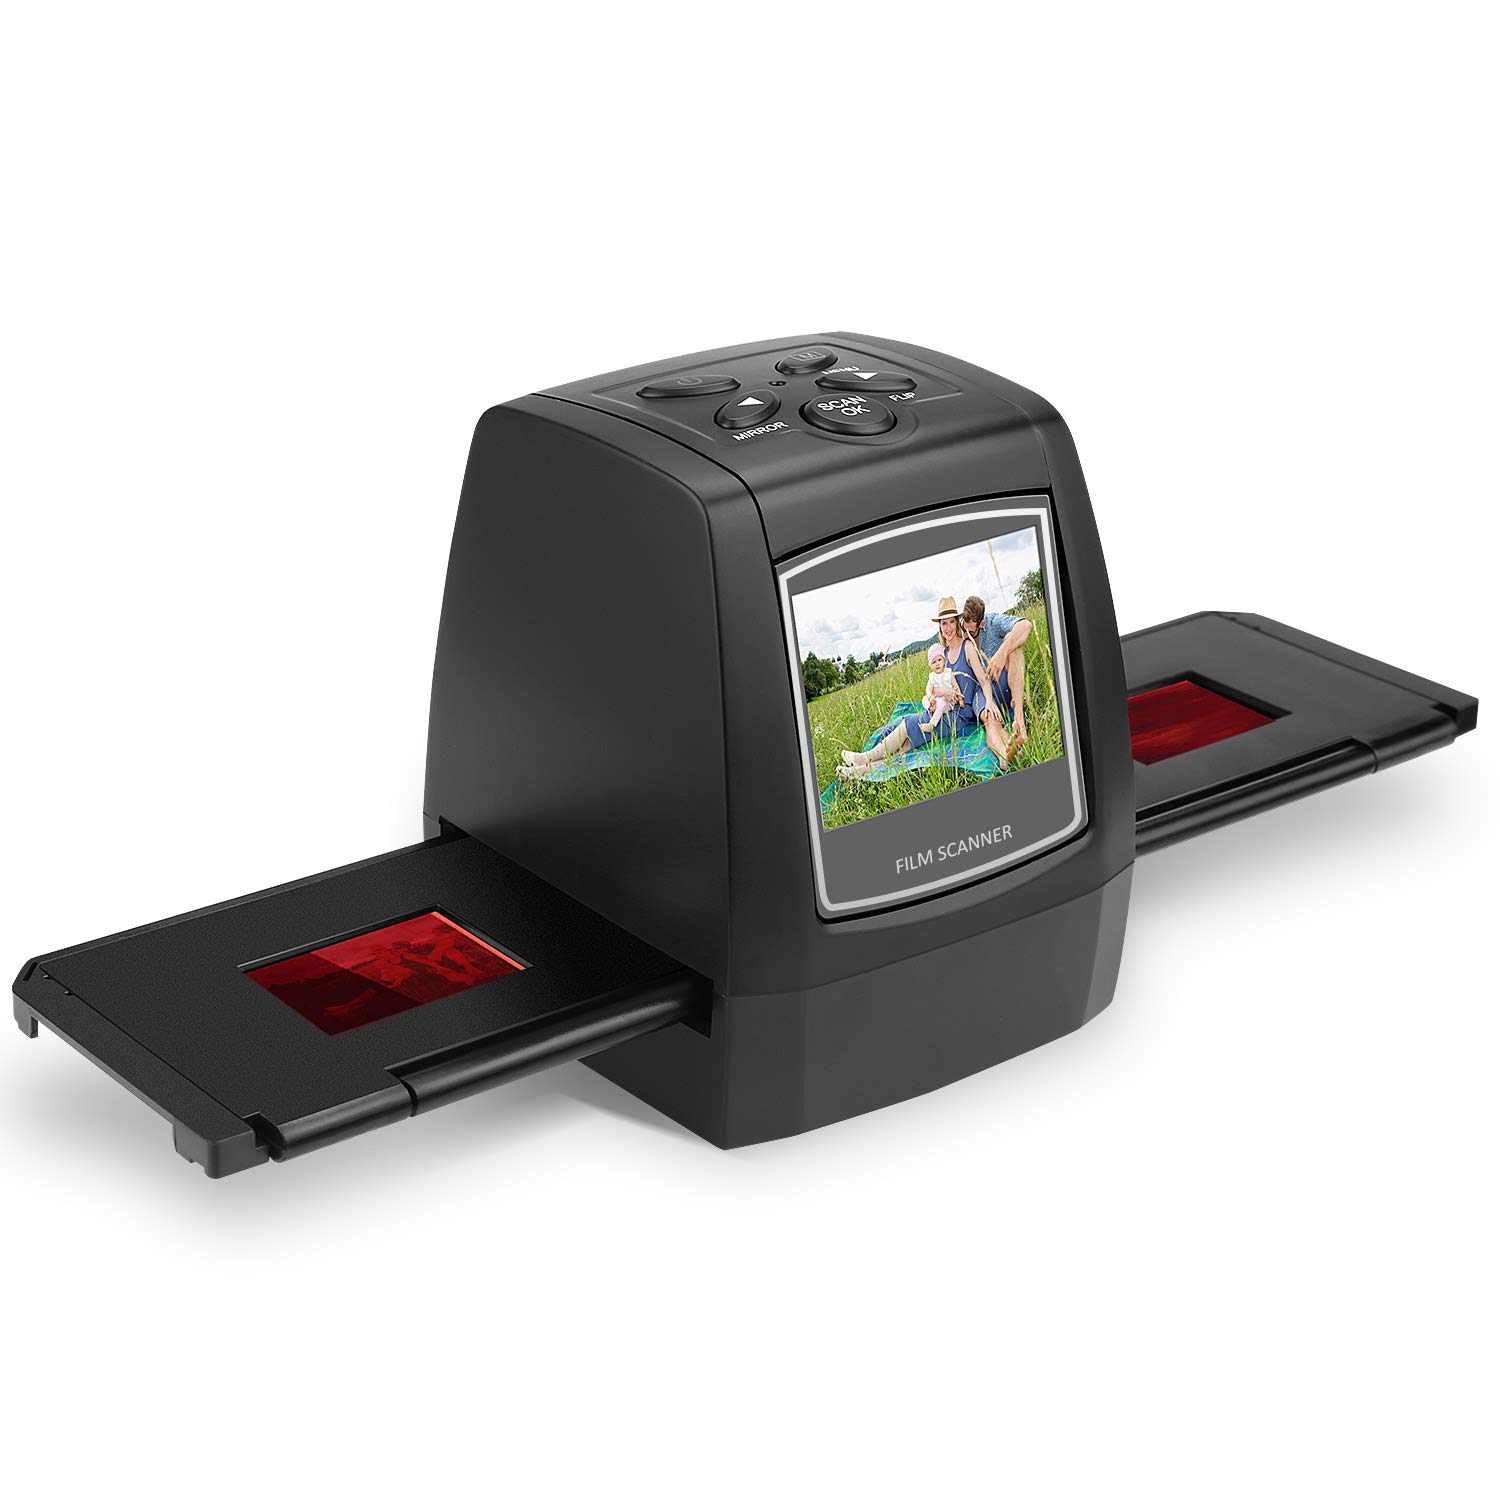 SubClap Film & Slide Scanner, Converts 35mm, 110, 126 Negative & Slides to Photo Image, Super 8 Films into Digital Photos, No Computer Required (Black)